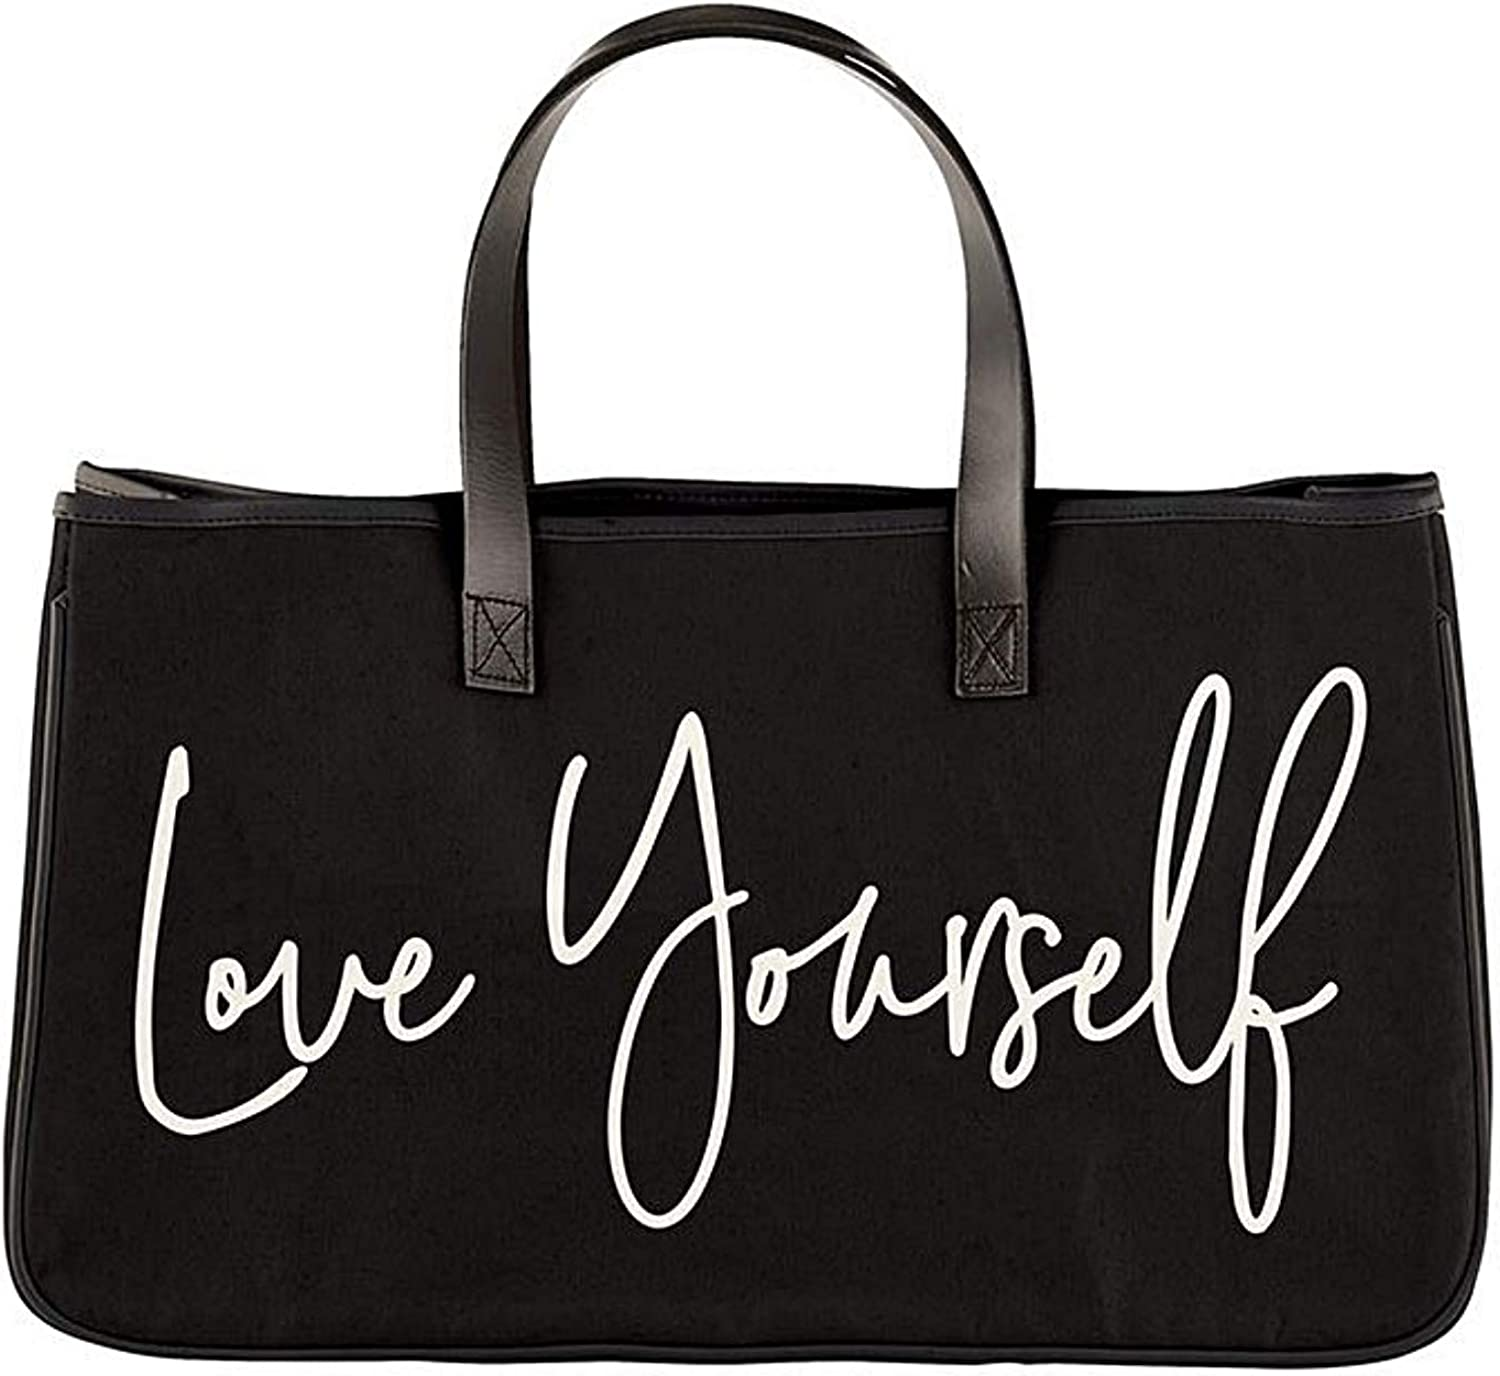 Black Canvas Tote Bag Love Large Purse Yourself Daily bargain It is very popular sale Quote Printed